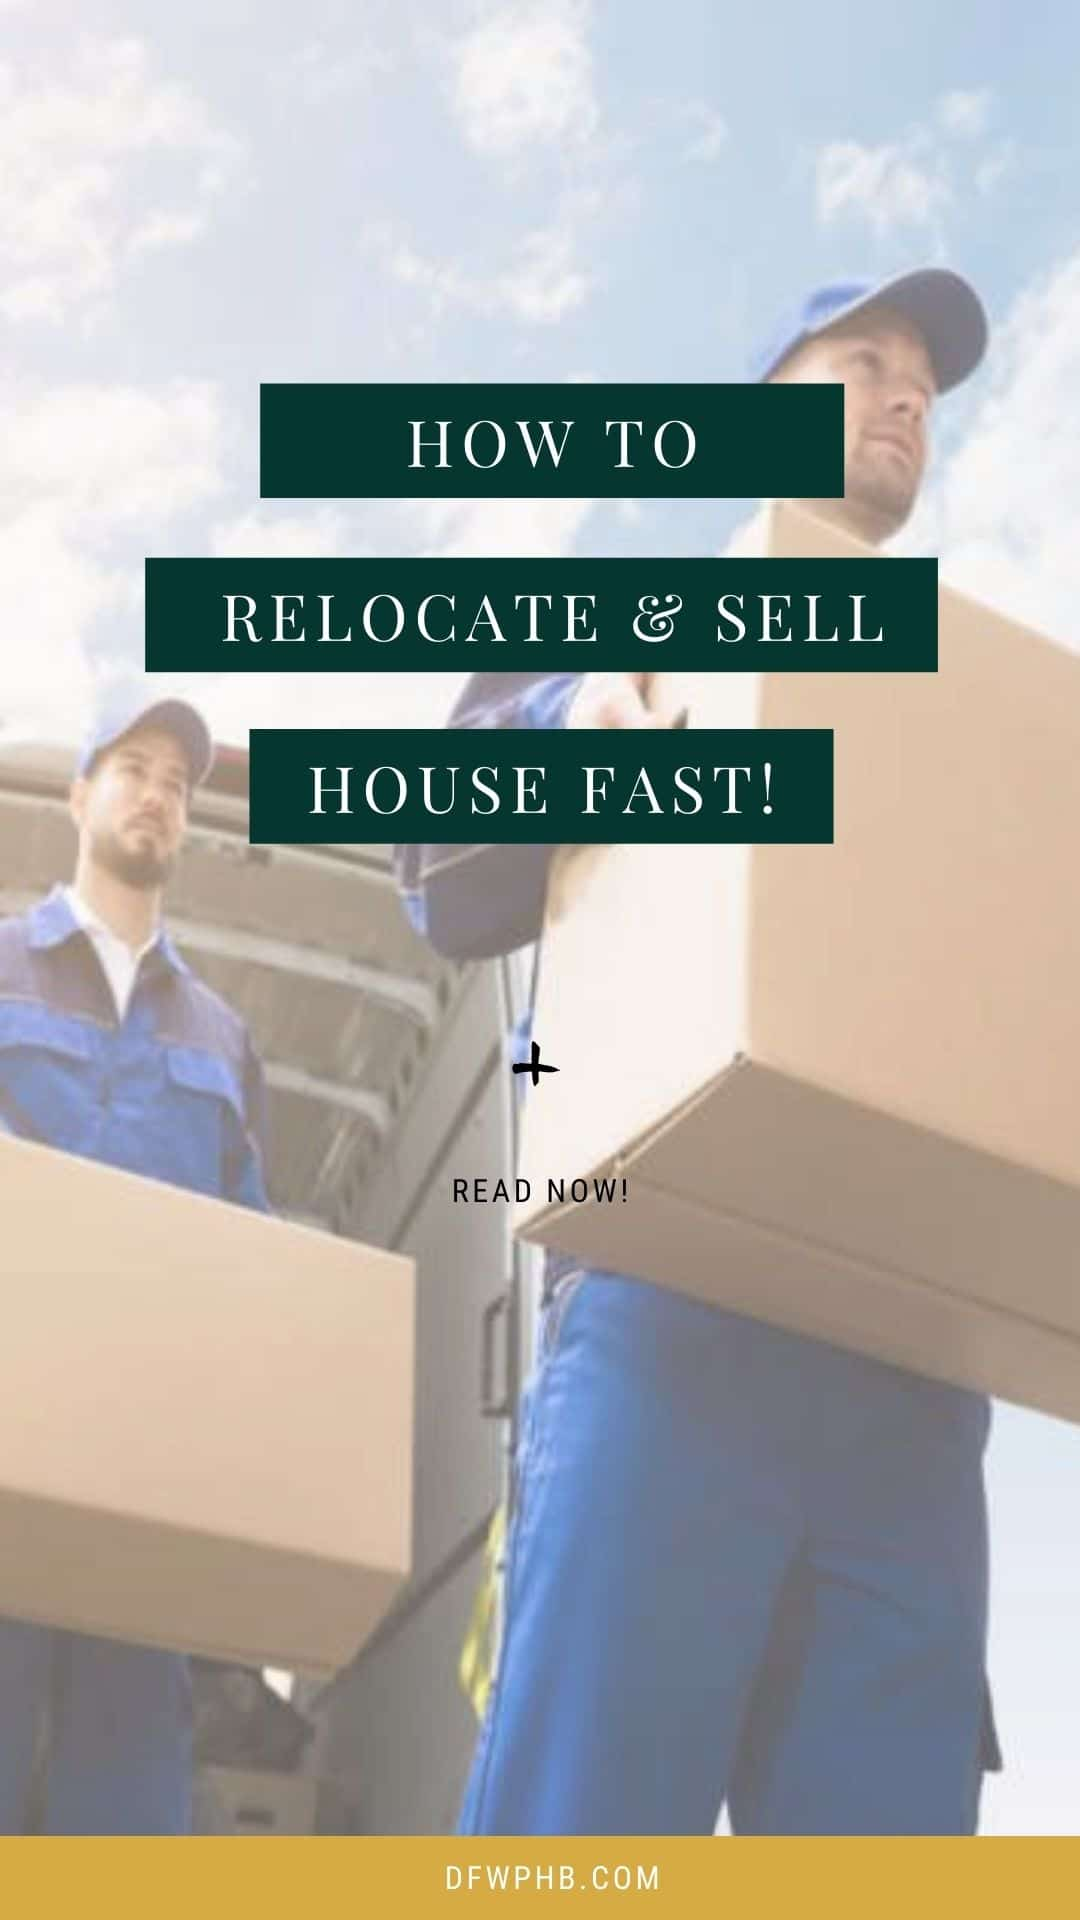 A guide on relocation and sell house fast in Texas